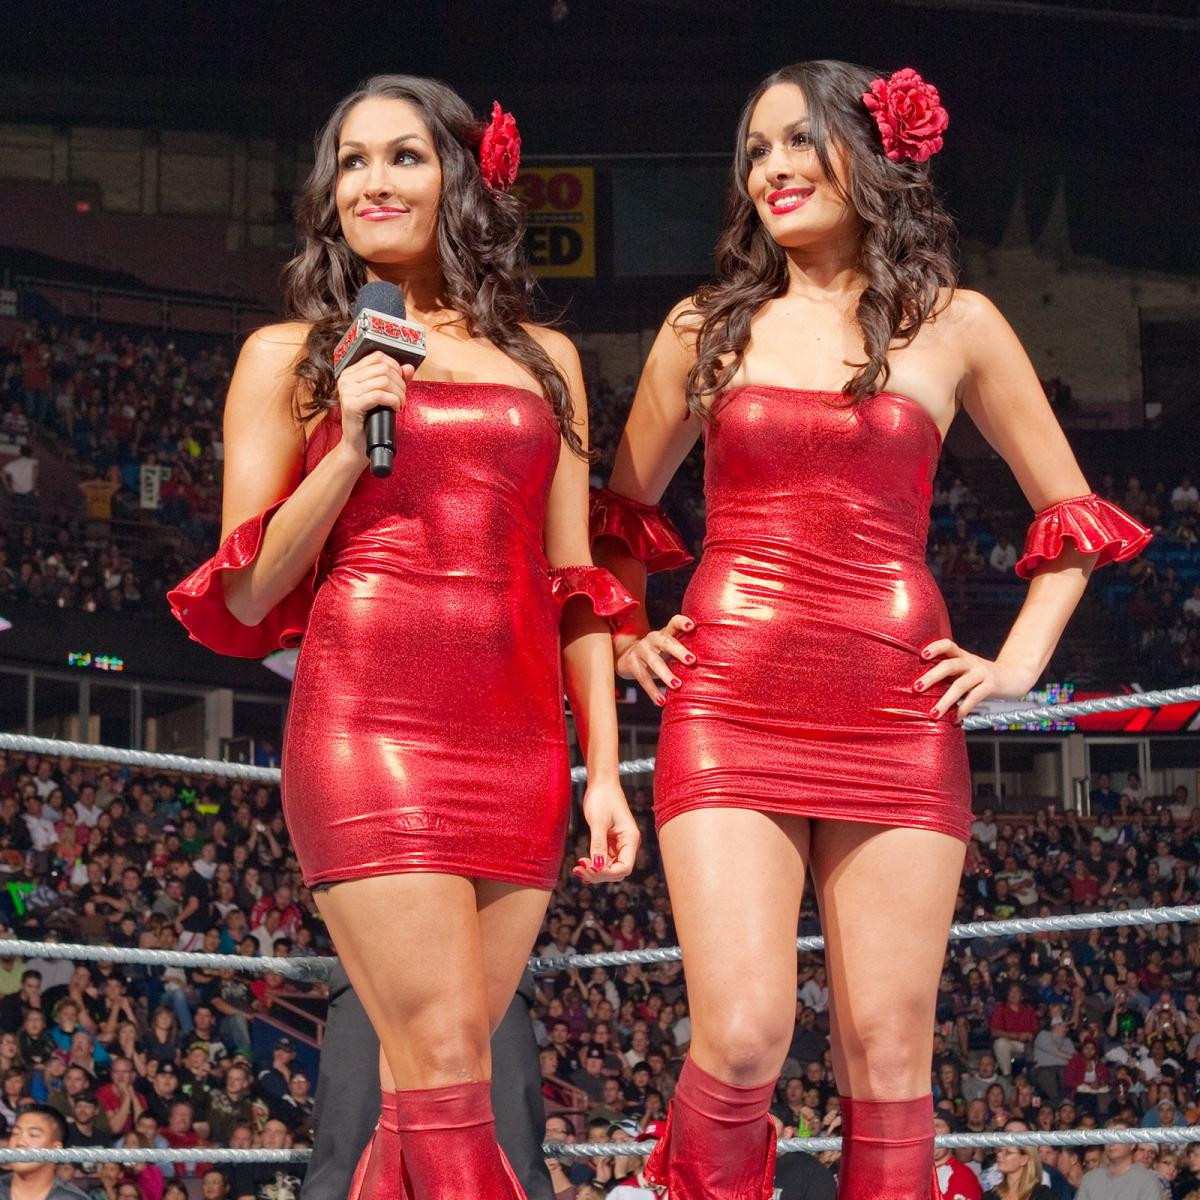 WWE twins and reality stars, Brie and Nikki Bella